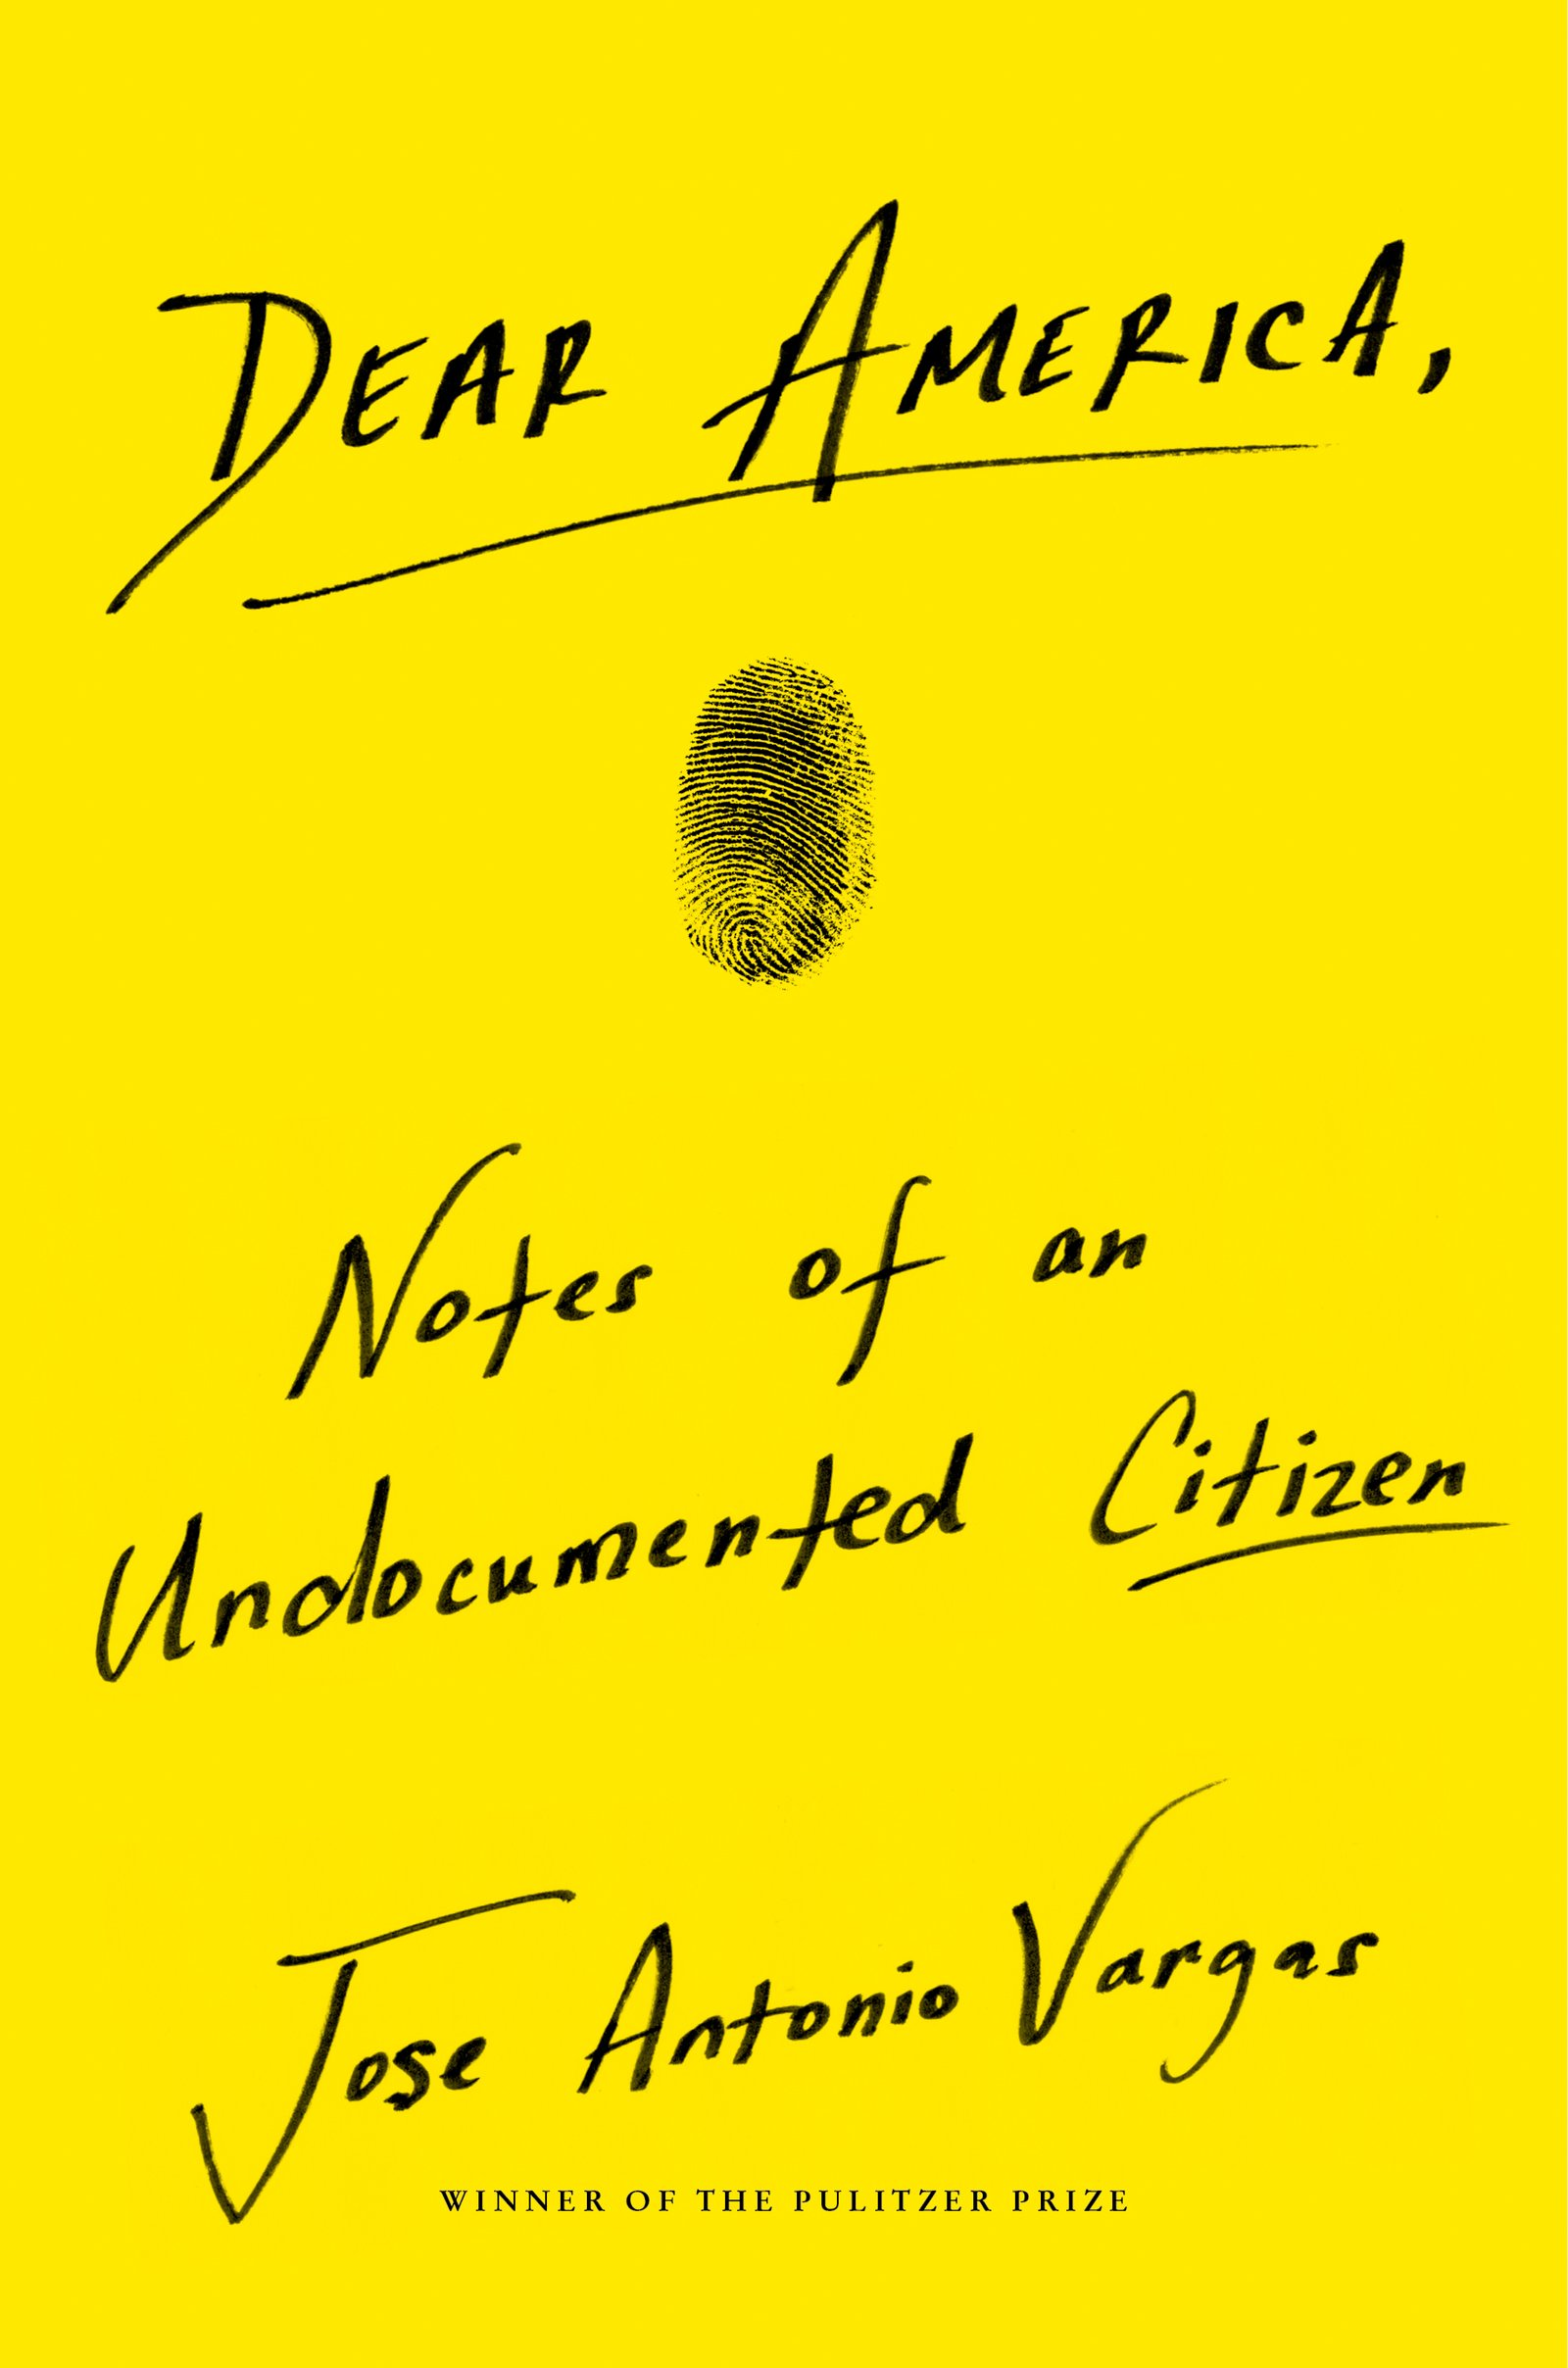 Dear_America-Notes_of_an_Undocumented_Citizen-Jose_Antonio_Vargas